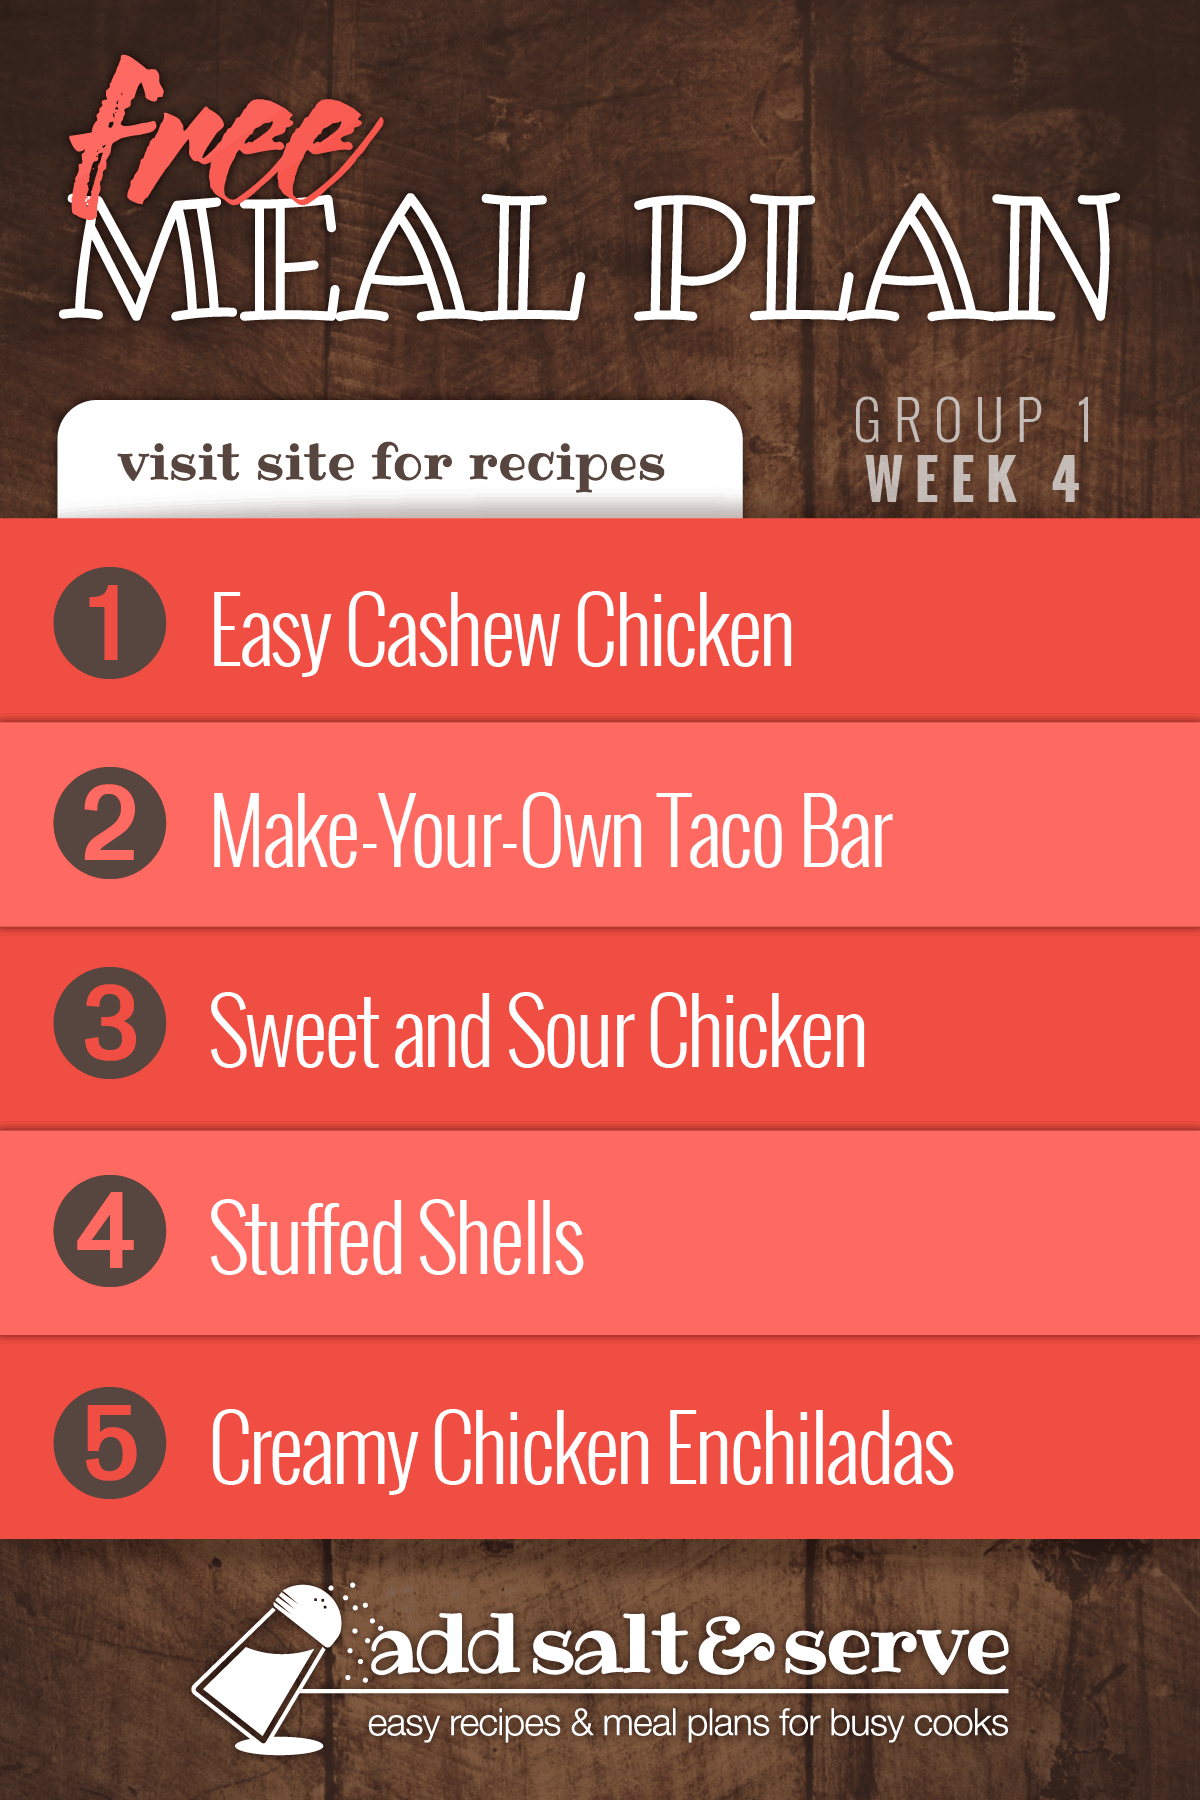 Meal Plan for Week 4 (Group 1): Easy Cashew Chicken, Serve Your Own taco Bar, Sweet & Sour Chicken, Stuffed Shells, Creamy Chicken Enchiladas